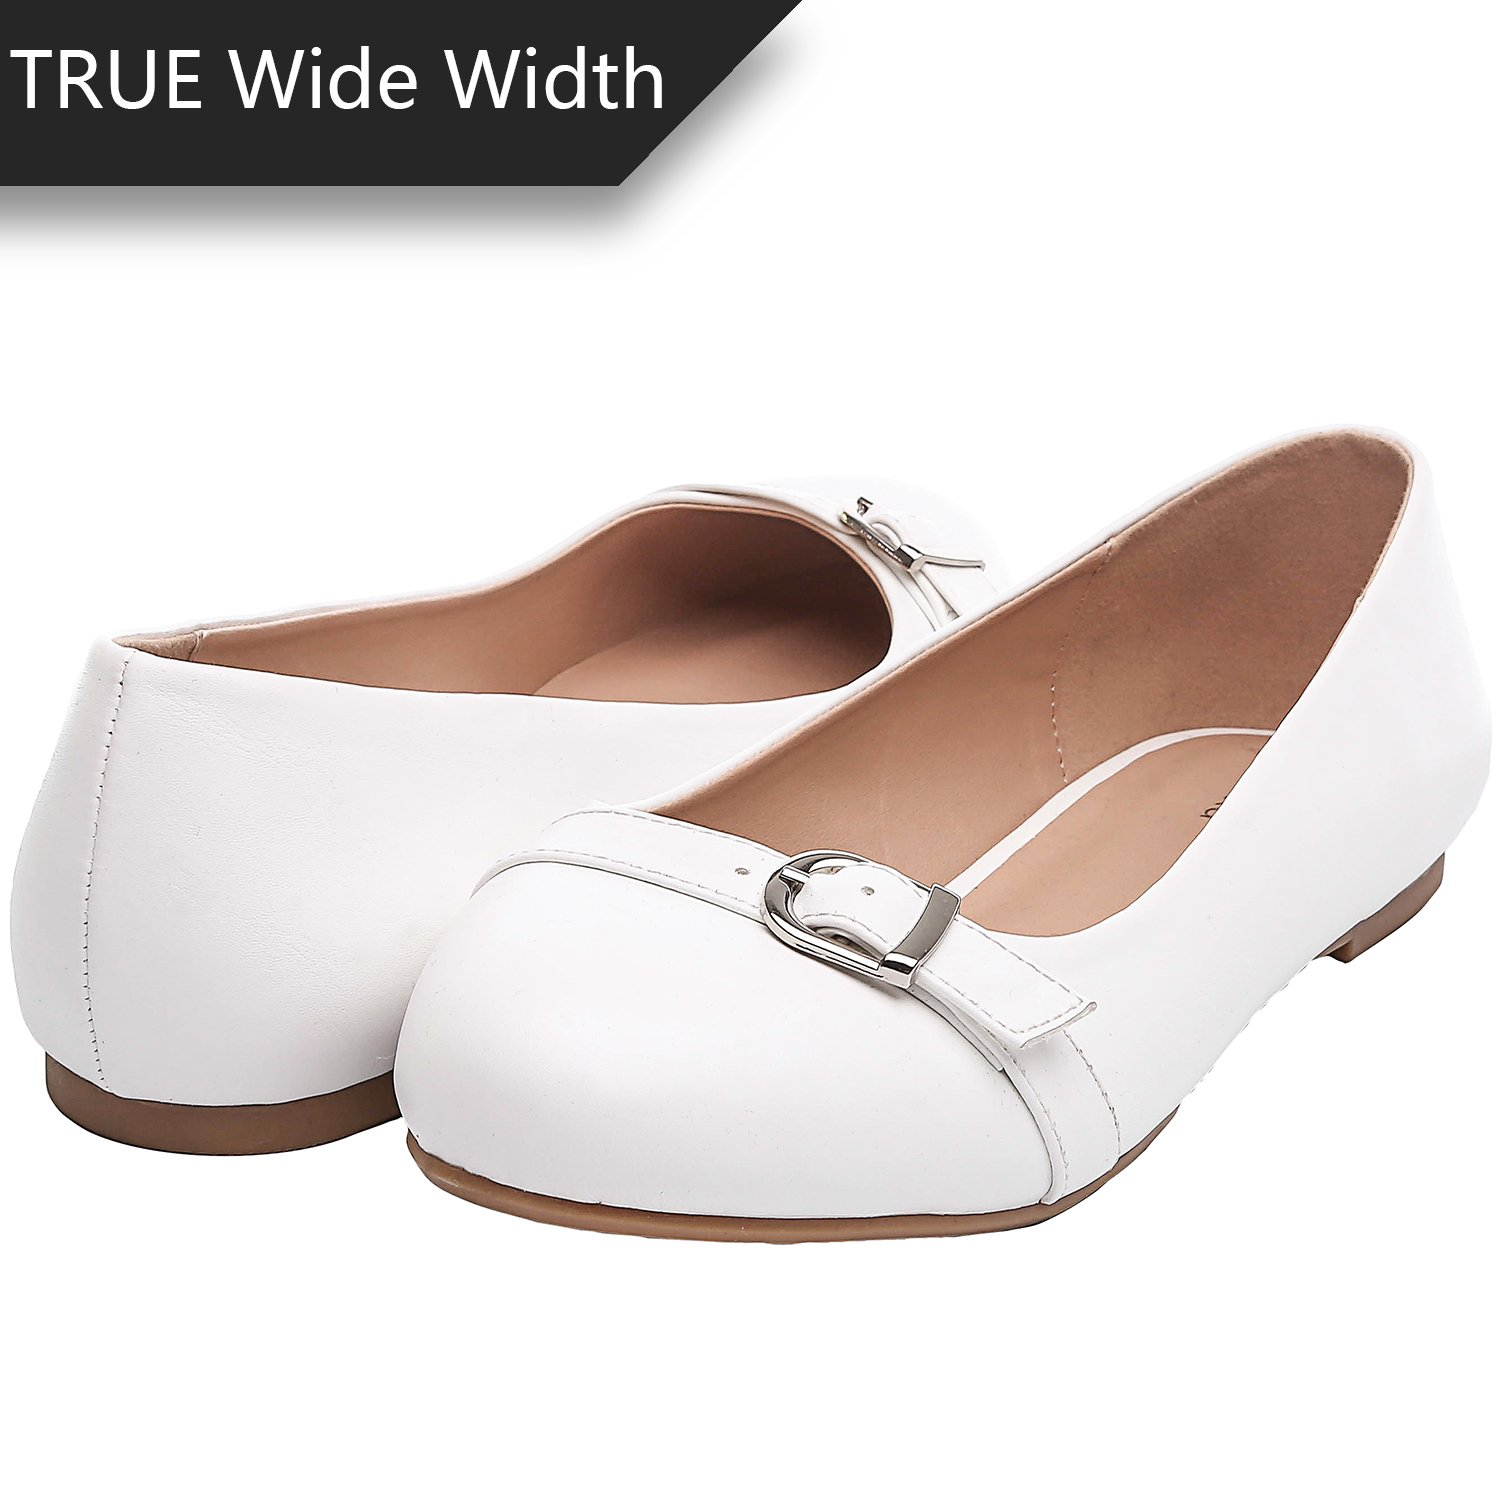 Luoika Women's Wide Width Flat Shoes - Comfortable Slip On Round Toe Ballet Flats(WhitePU 180340,6.5WW)